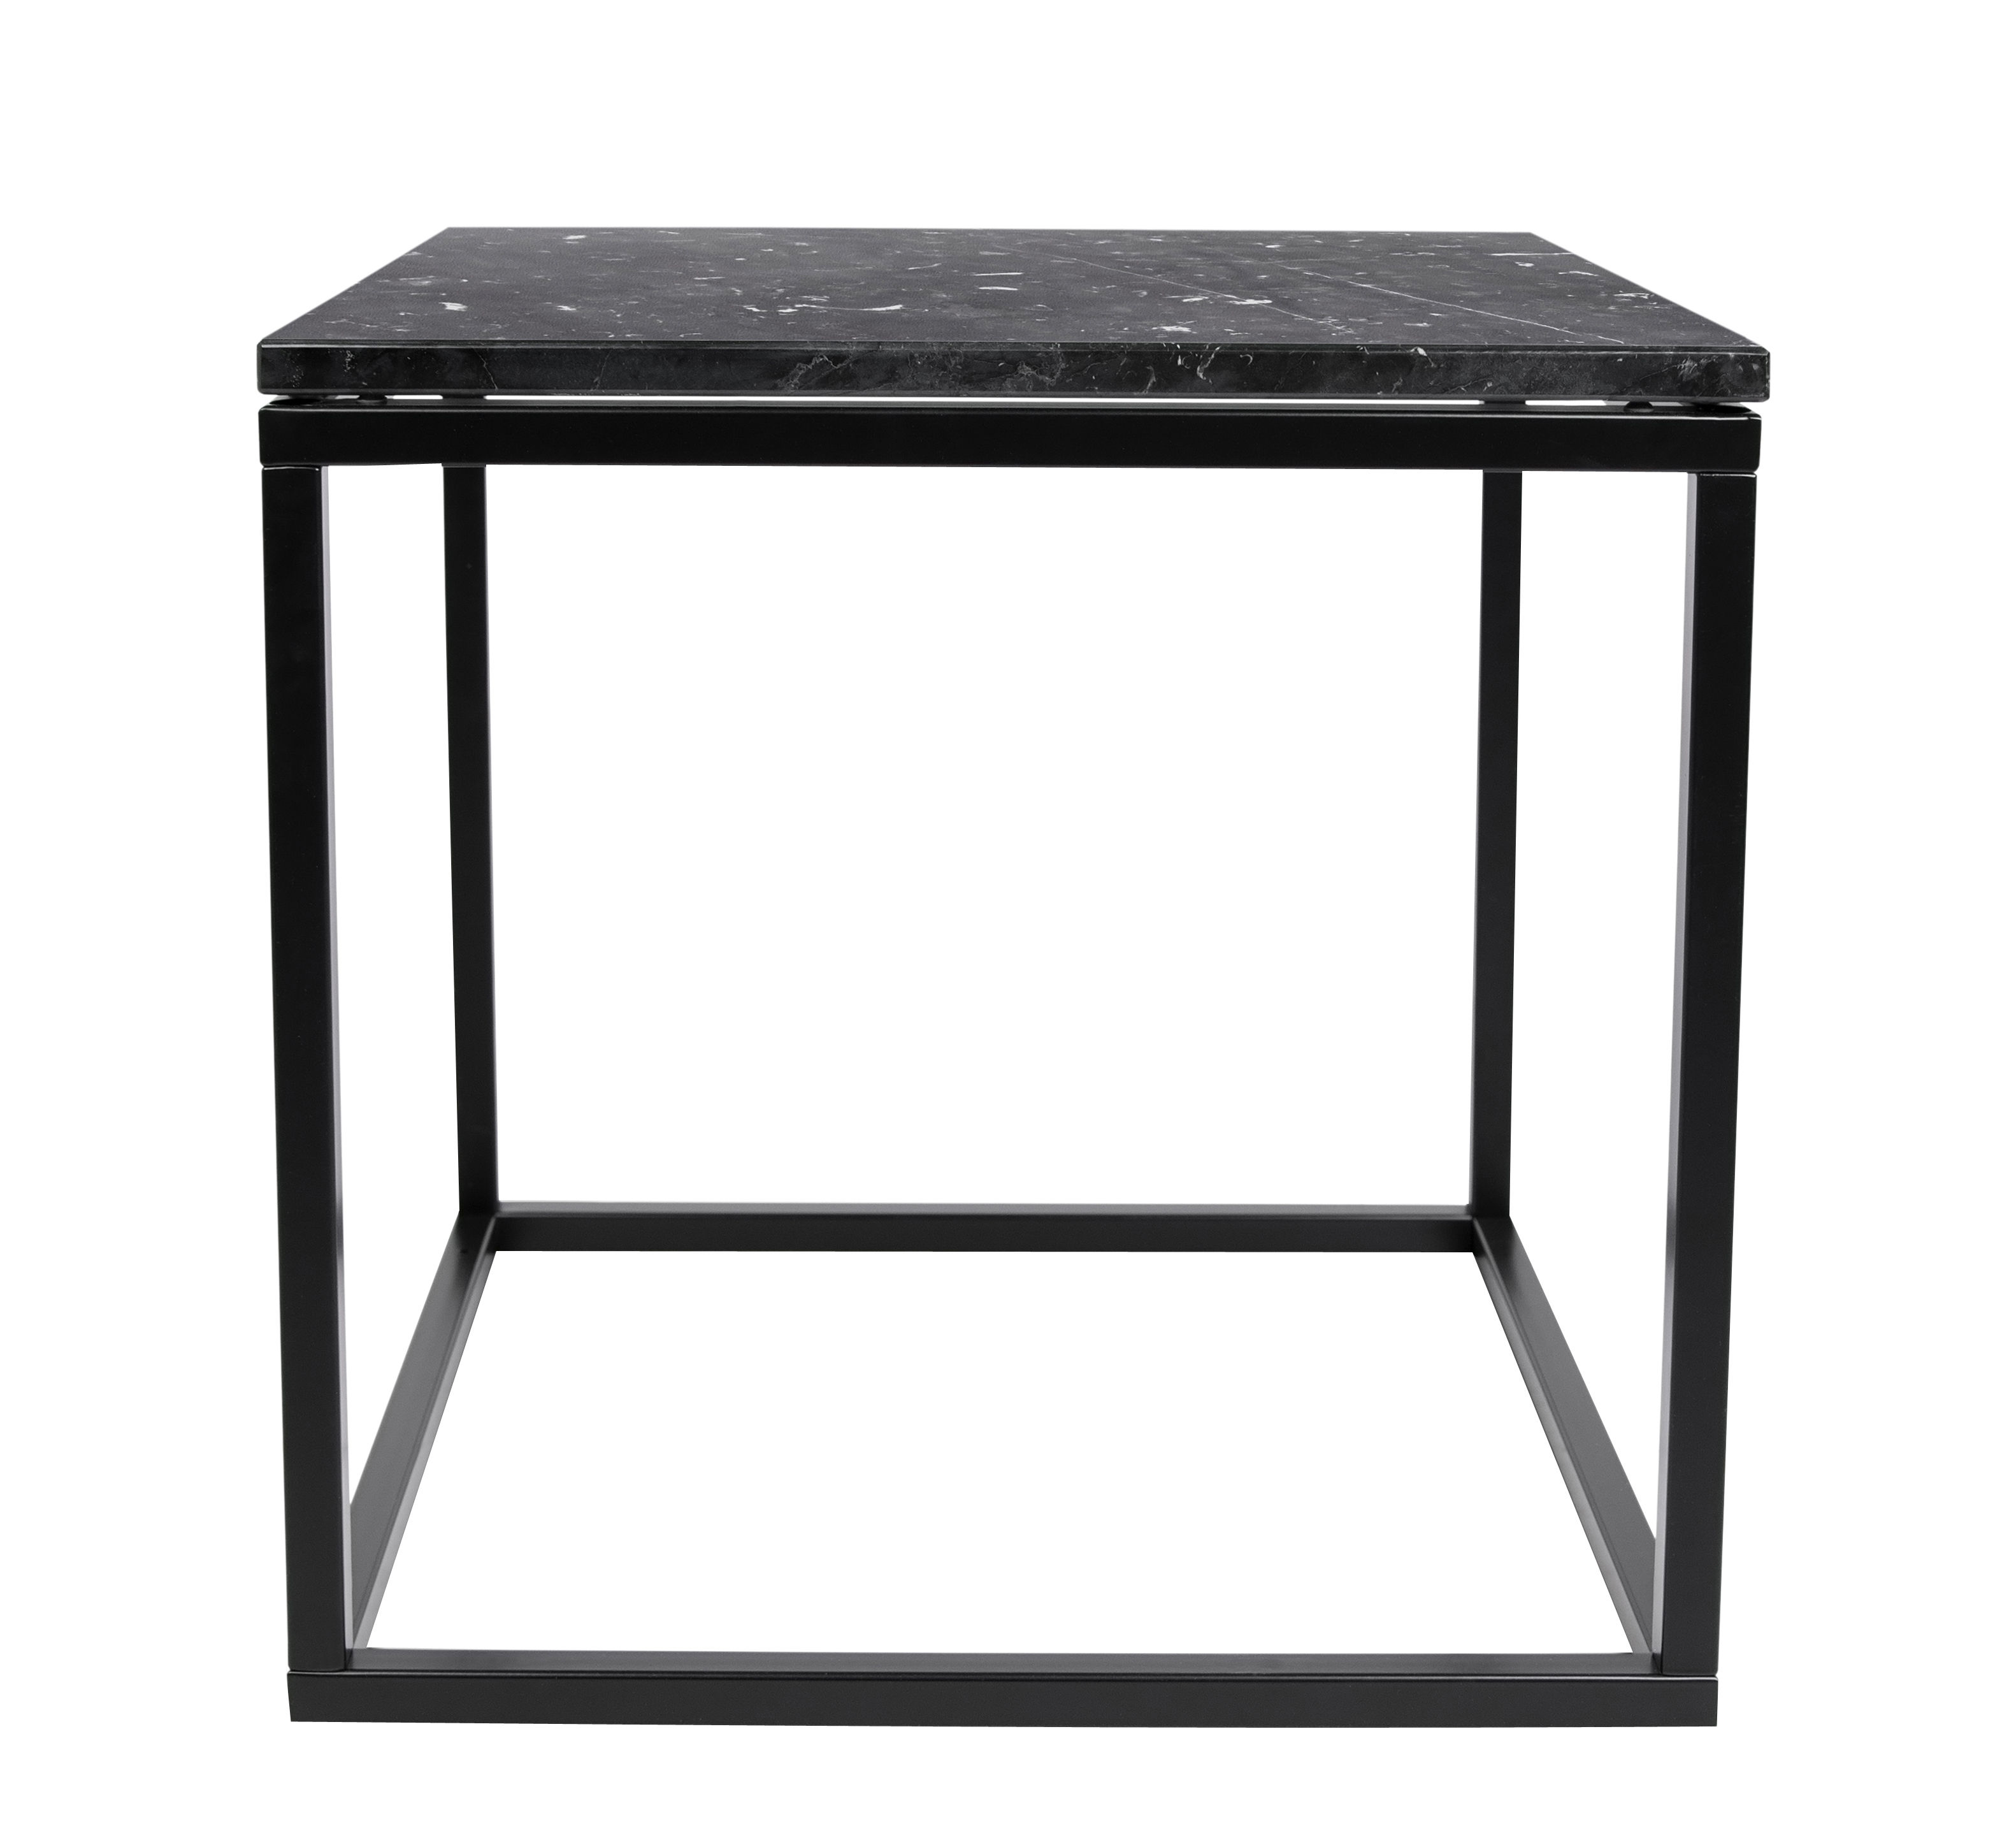 Marble Coffee Table Marble 50 X 50cm Black Marble Black Leg